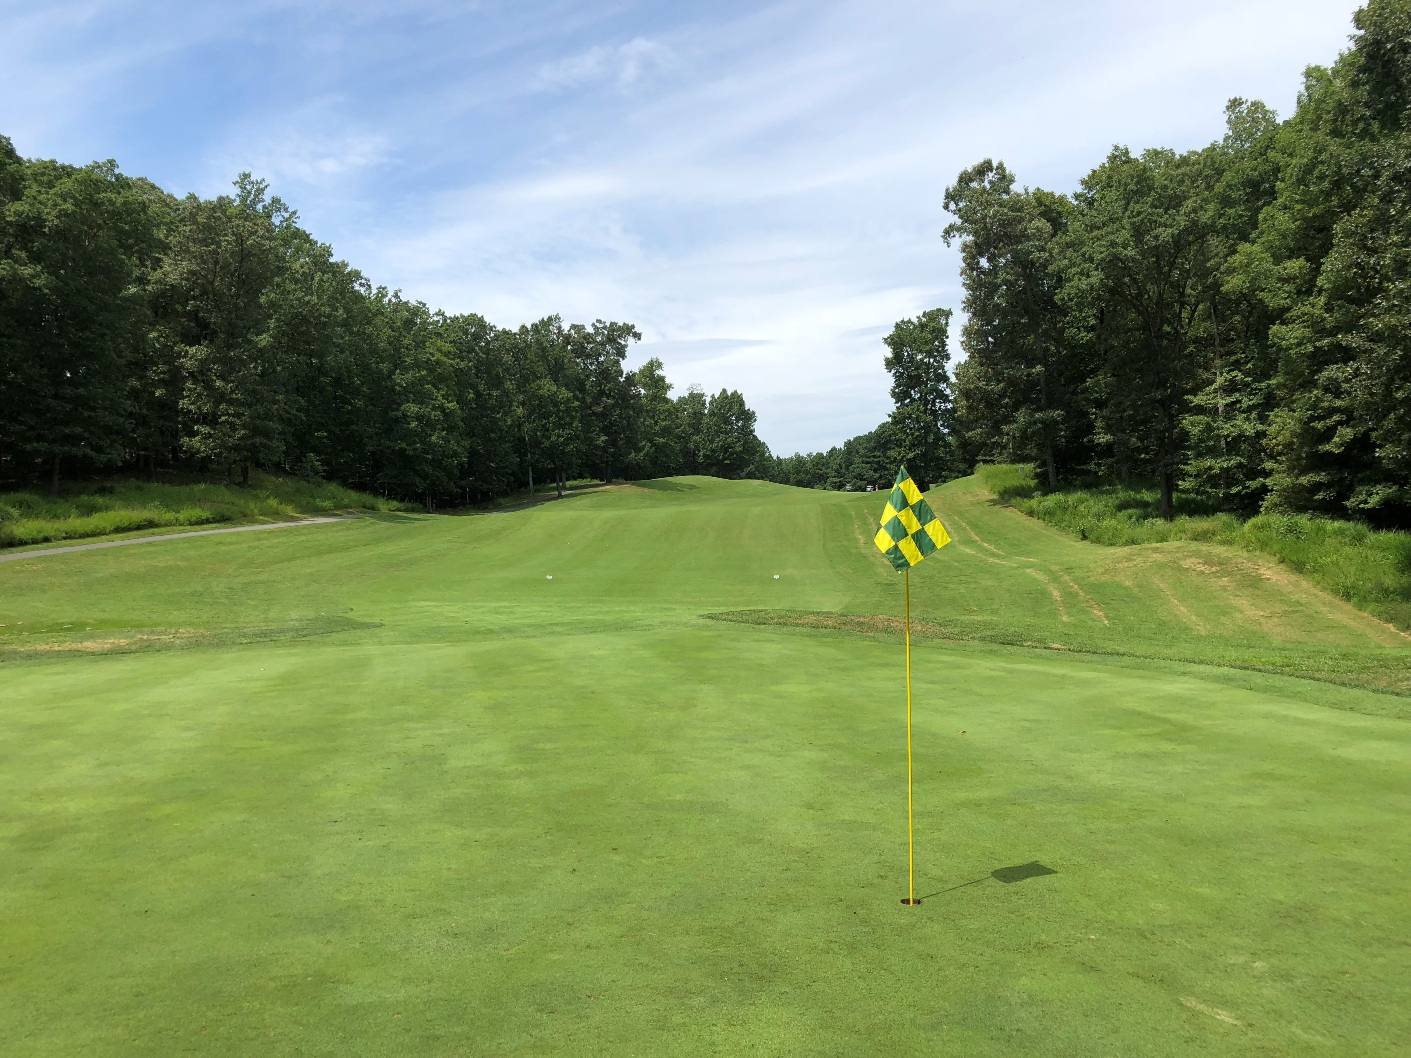 Forest Greens Golf Club (Triangle, VA on 08/18/18 ...